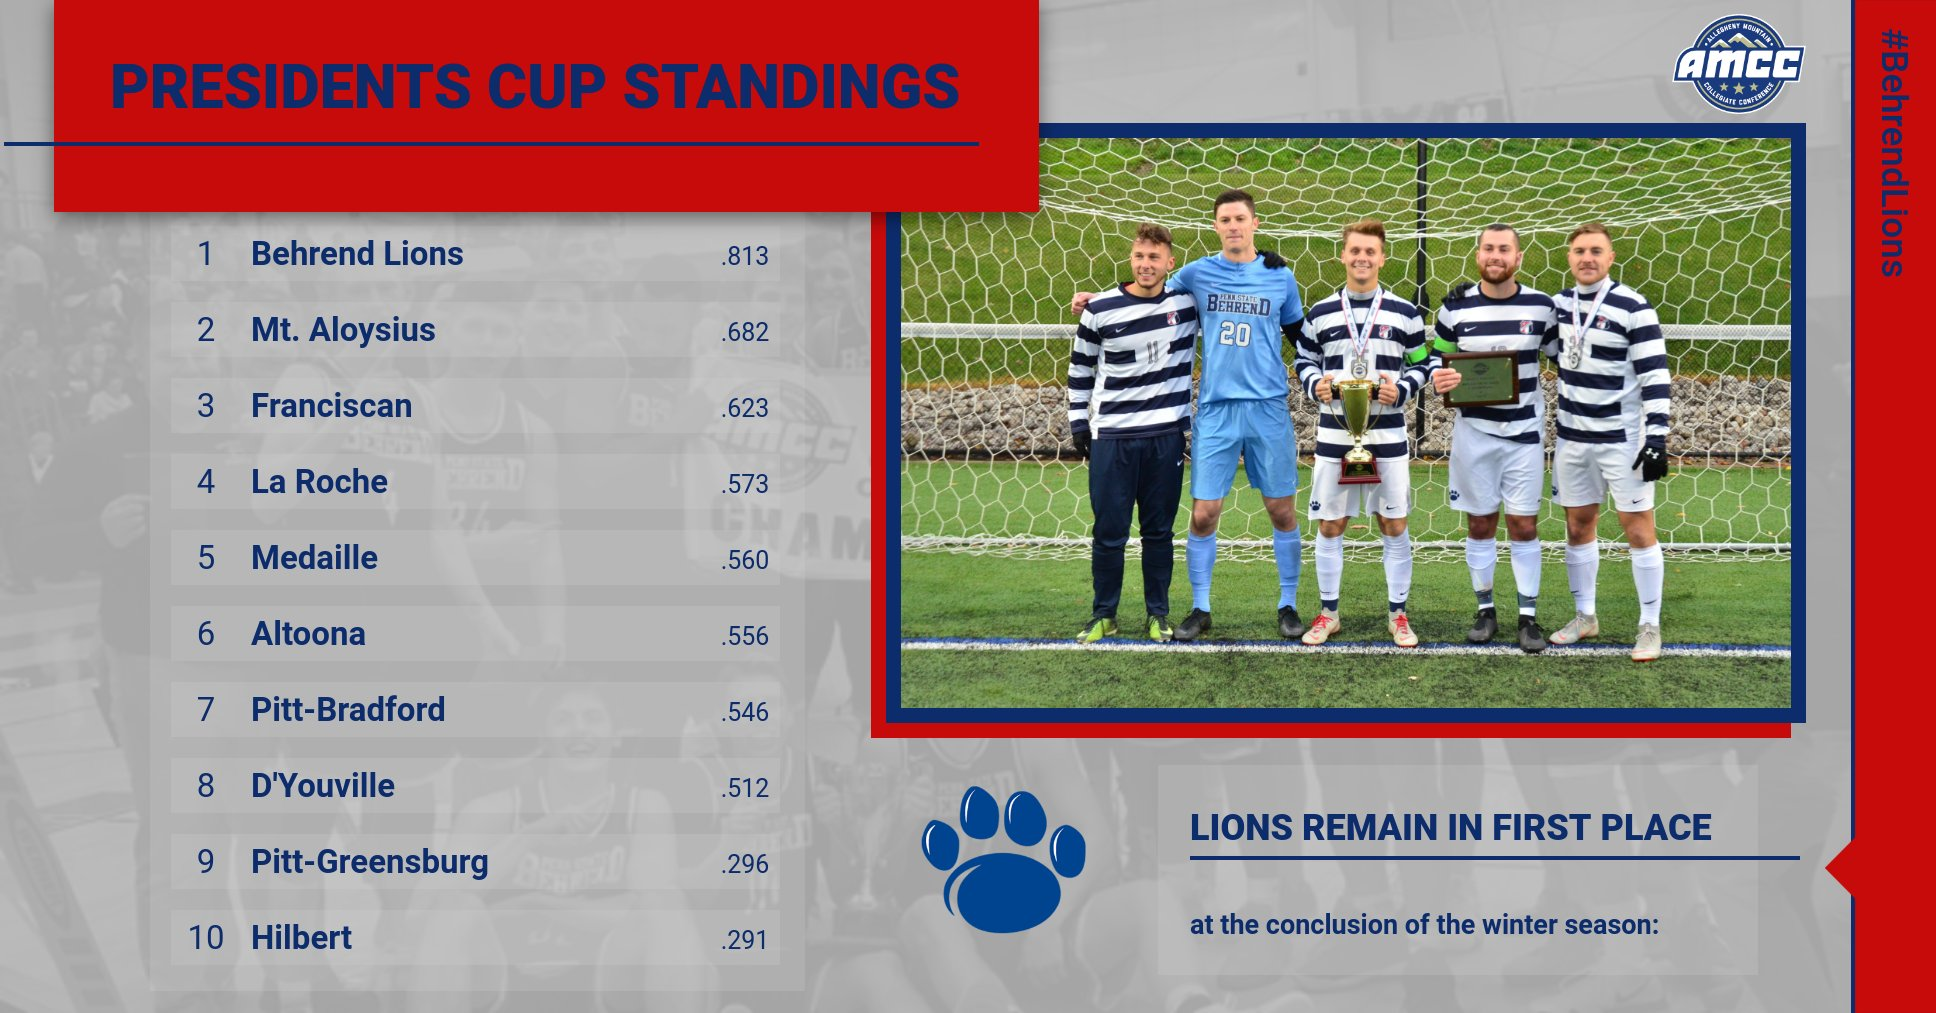 Behrend Lions Continue to Lead Presidents Cup Standings